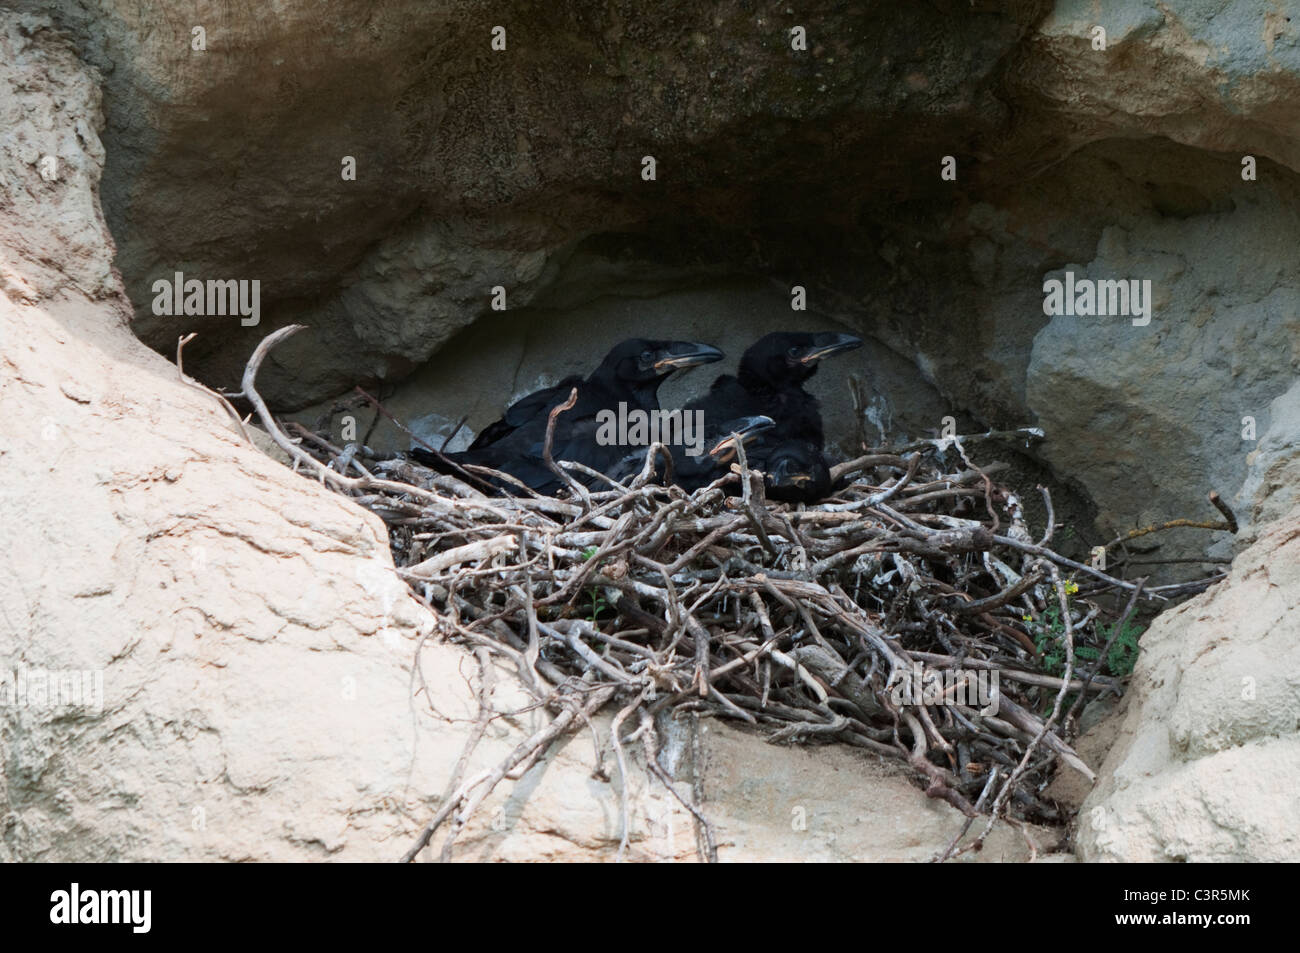 Common Raven's (Corvus corax) nest with four nestlings - Stock Image